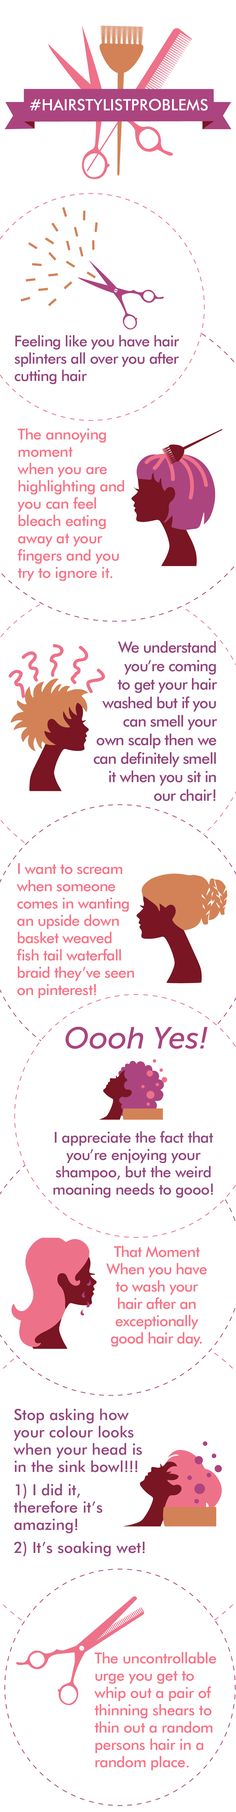 Hair Stylist Problems Infographic #hairsalon #cosmetology www,OneMorePress.com